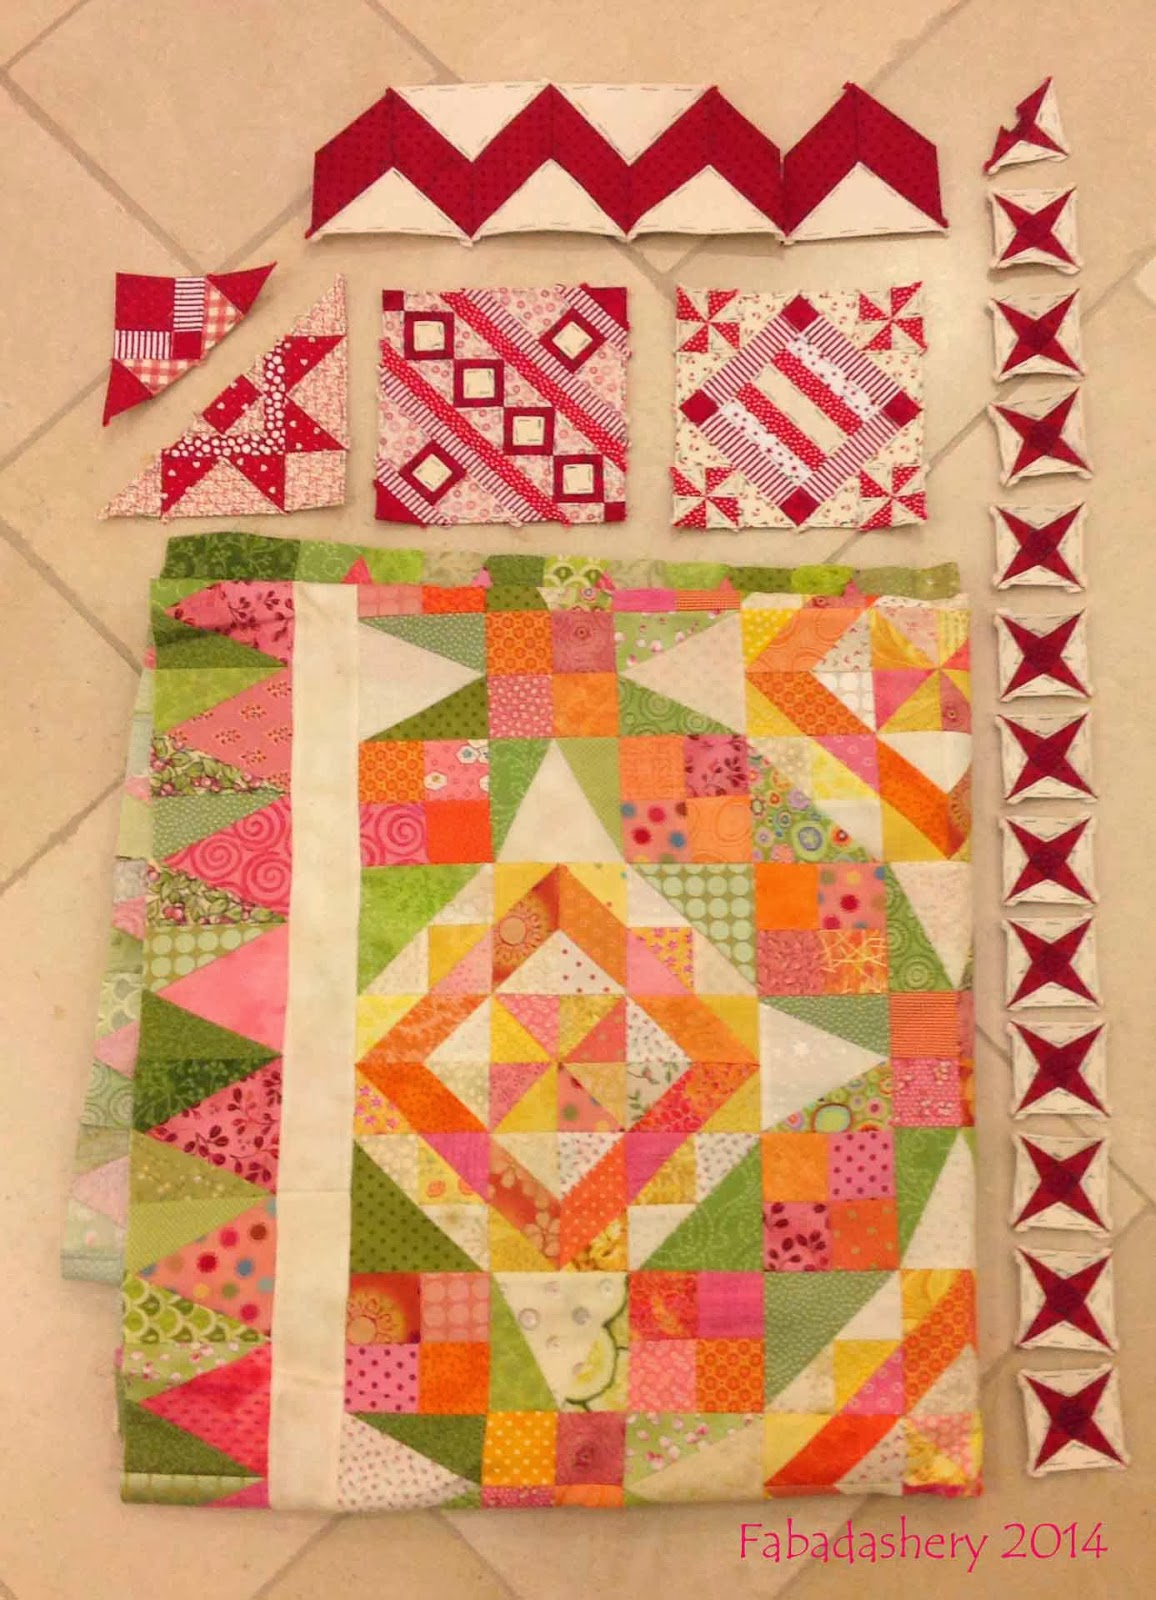 Output - 12 Days of Sewing at Fabadashery